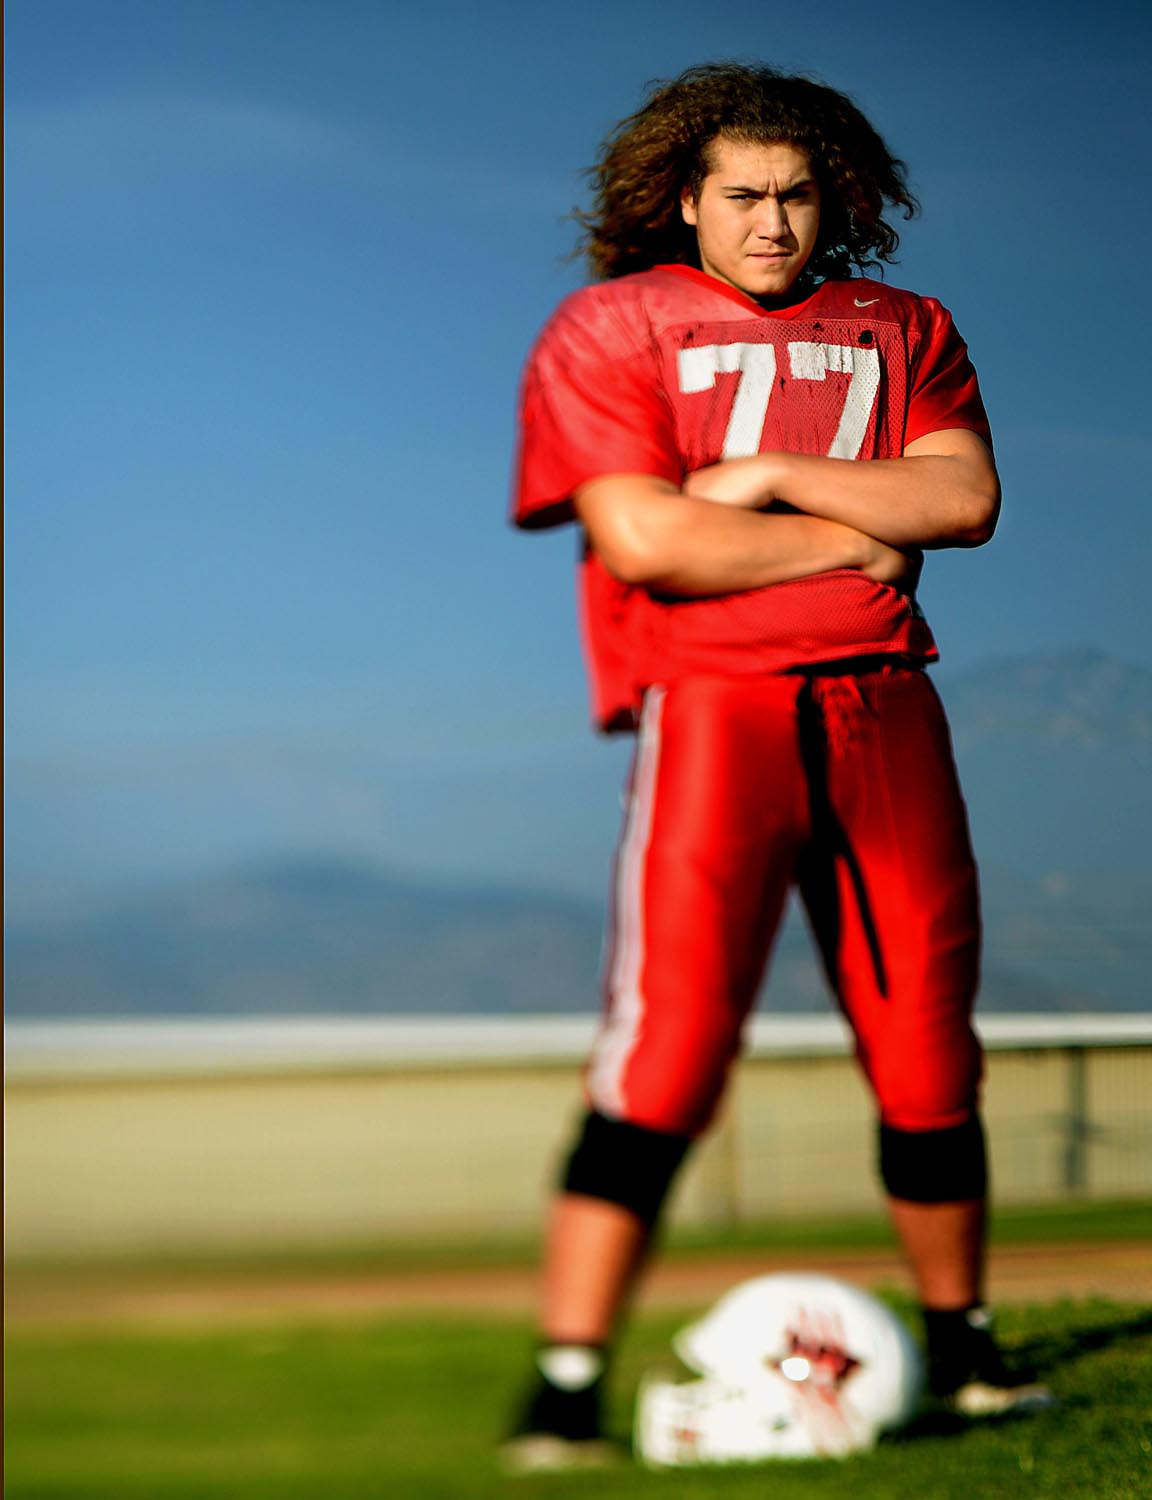 Redlands East Valley left tackle Joseph Price has his eyes on a State championship Saturday as he gets ready for practice Thursday in Redlands, CA. December 11, 2014.